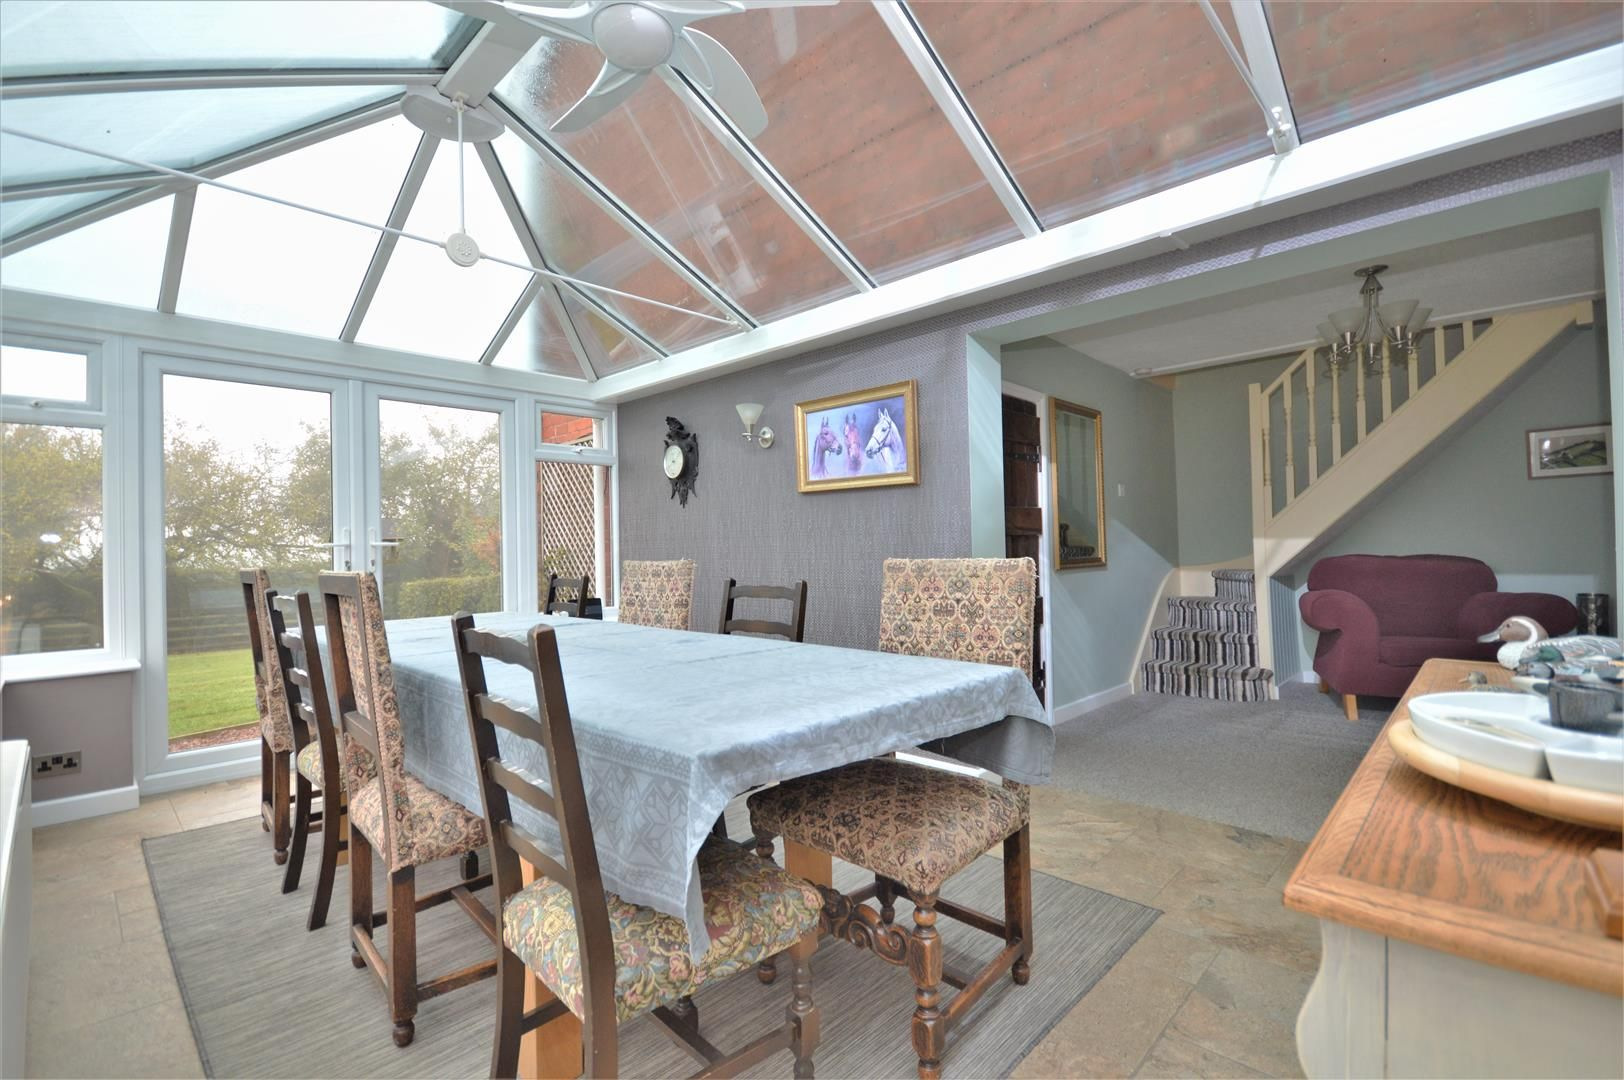 3 bed semi-detached for sale in Sutton St. Nicholas - Property Image 1